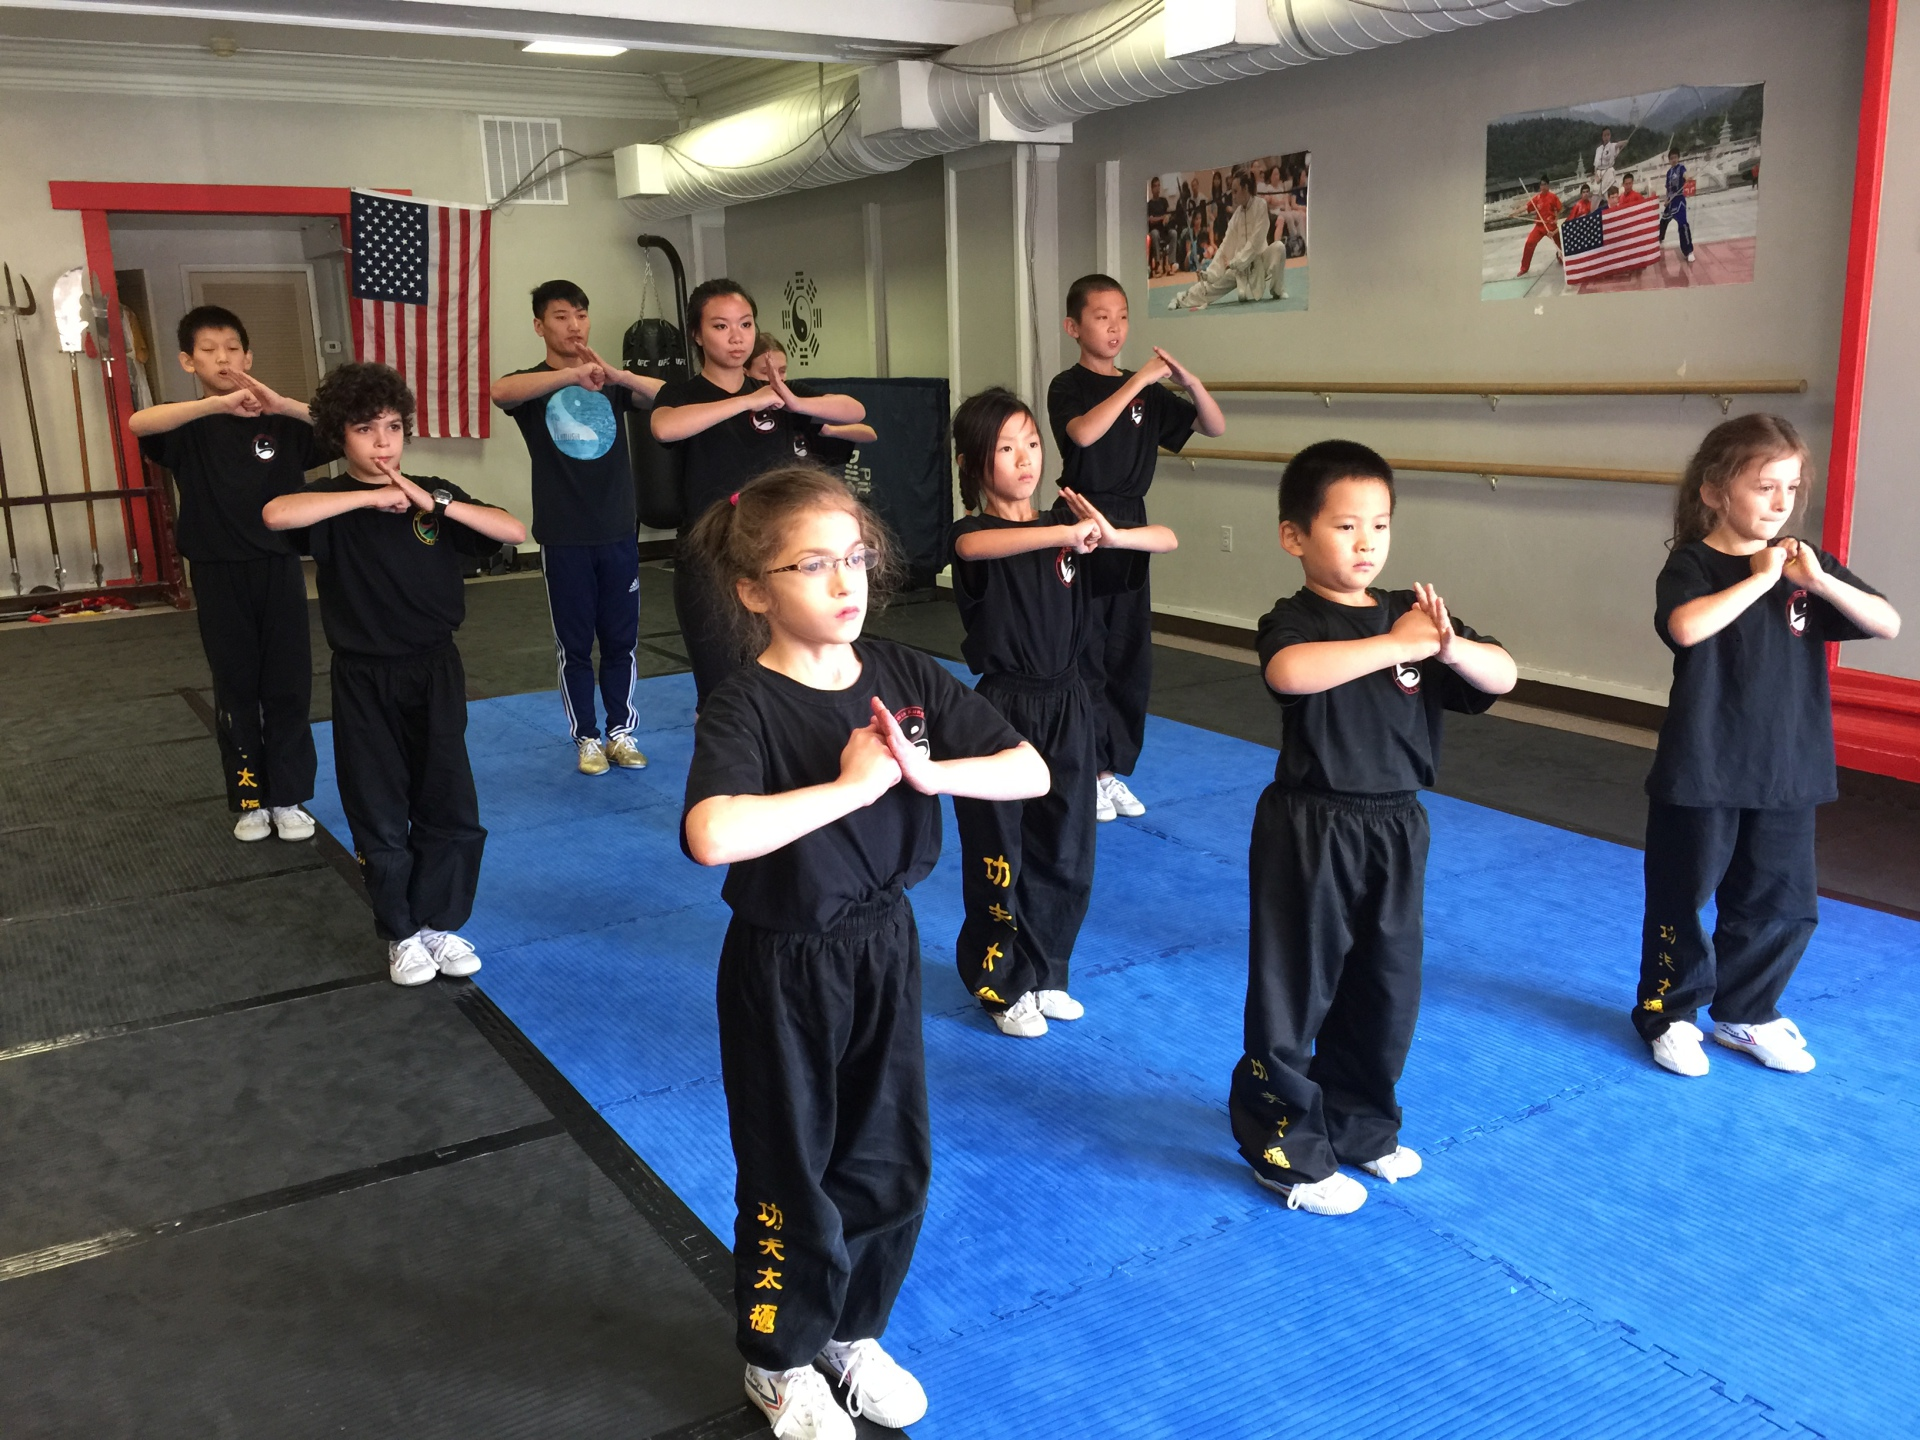 Wushu/kungfu classes